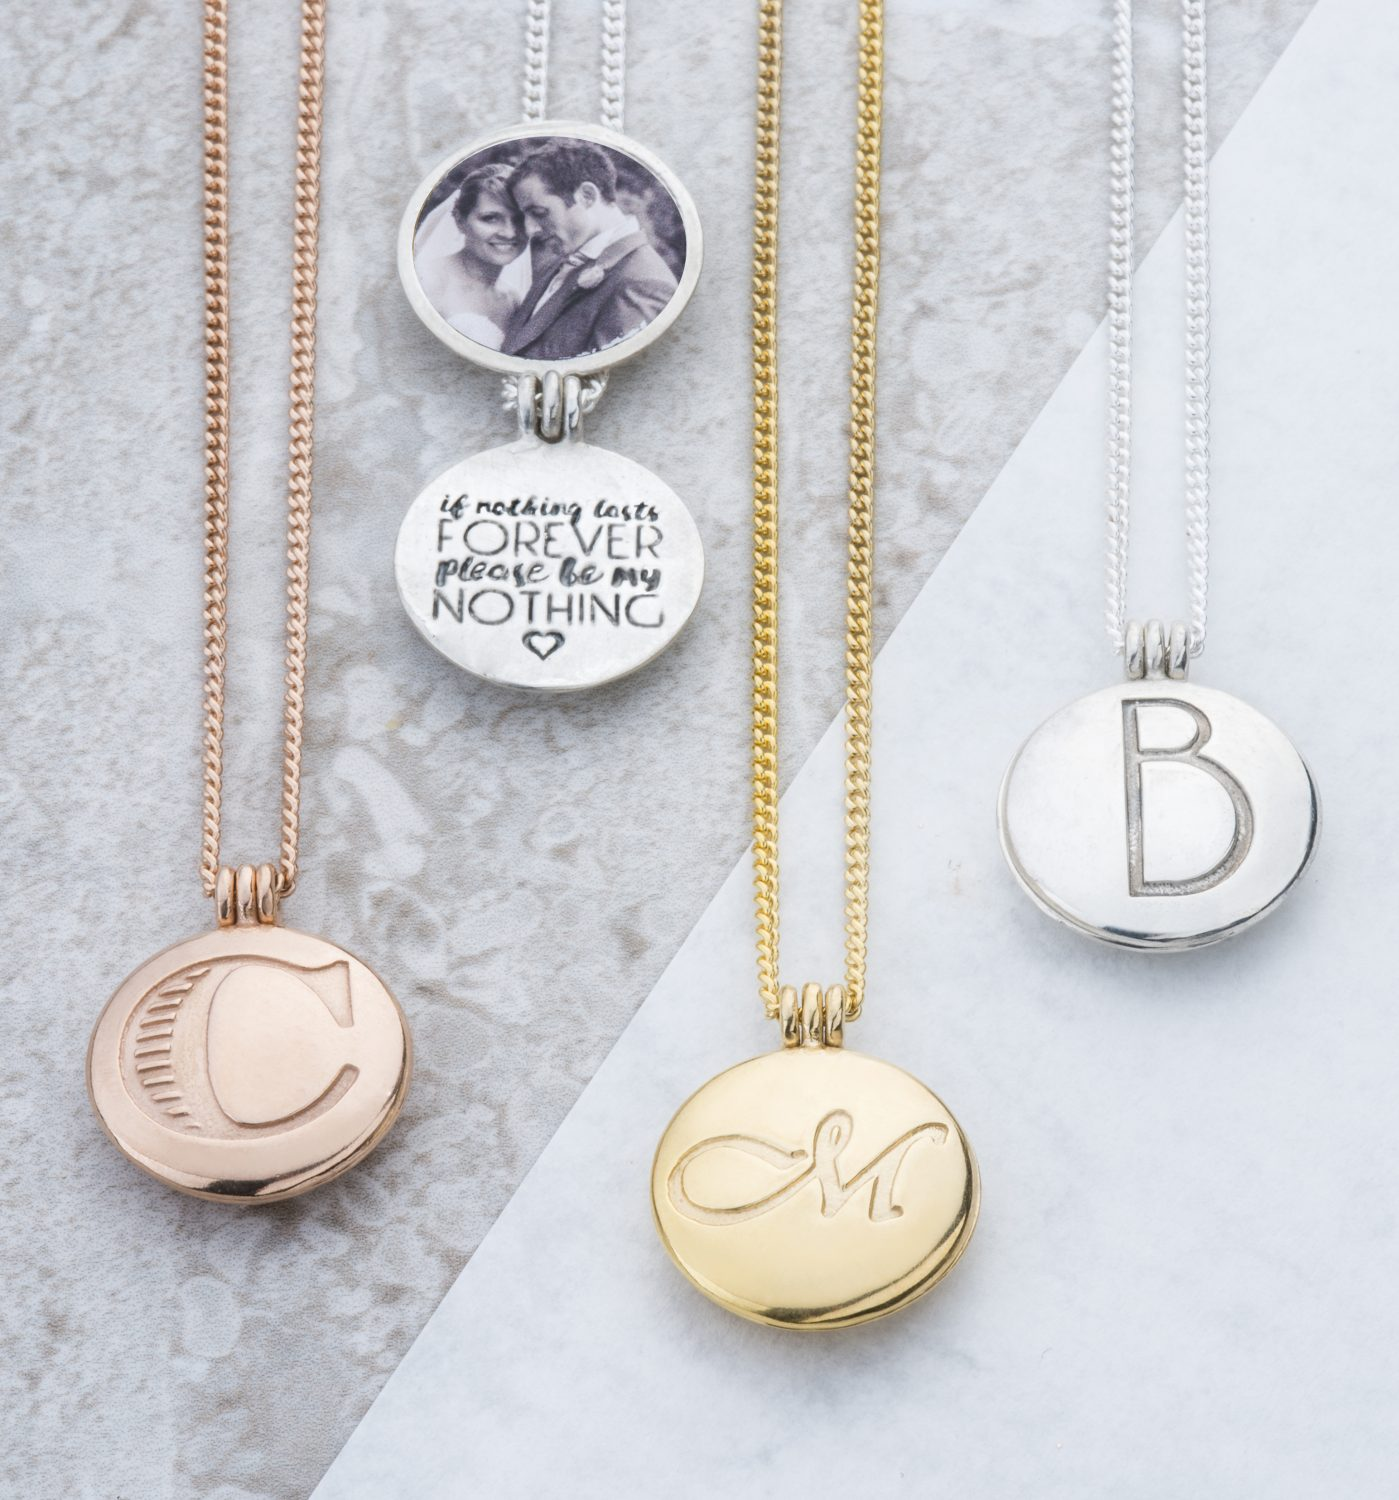 Initial Locket With Hidden Message  By Kimberley Selwood. Guy Wedding Rings. Bracelet Gold Jewellery. 12 Inch Gold Anklet. Wristbands Bracelet. Bone Pendant. Find Jewellery. Fitness Rings. Open Heart Engagement Rings